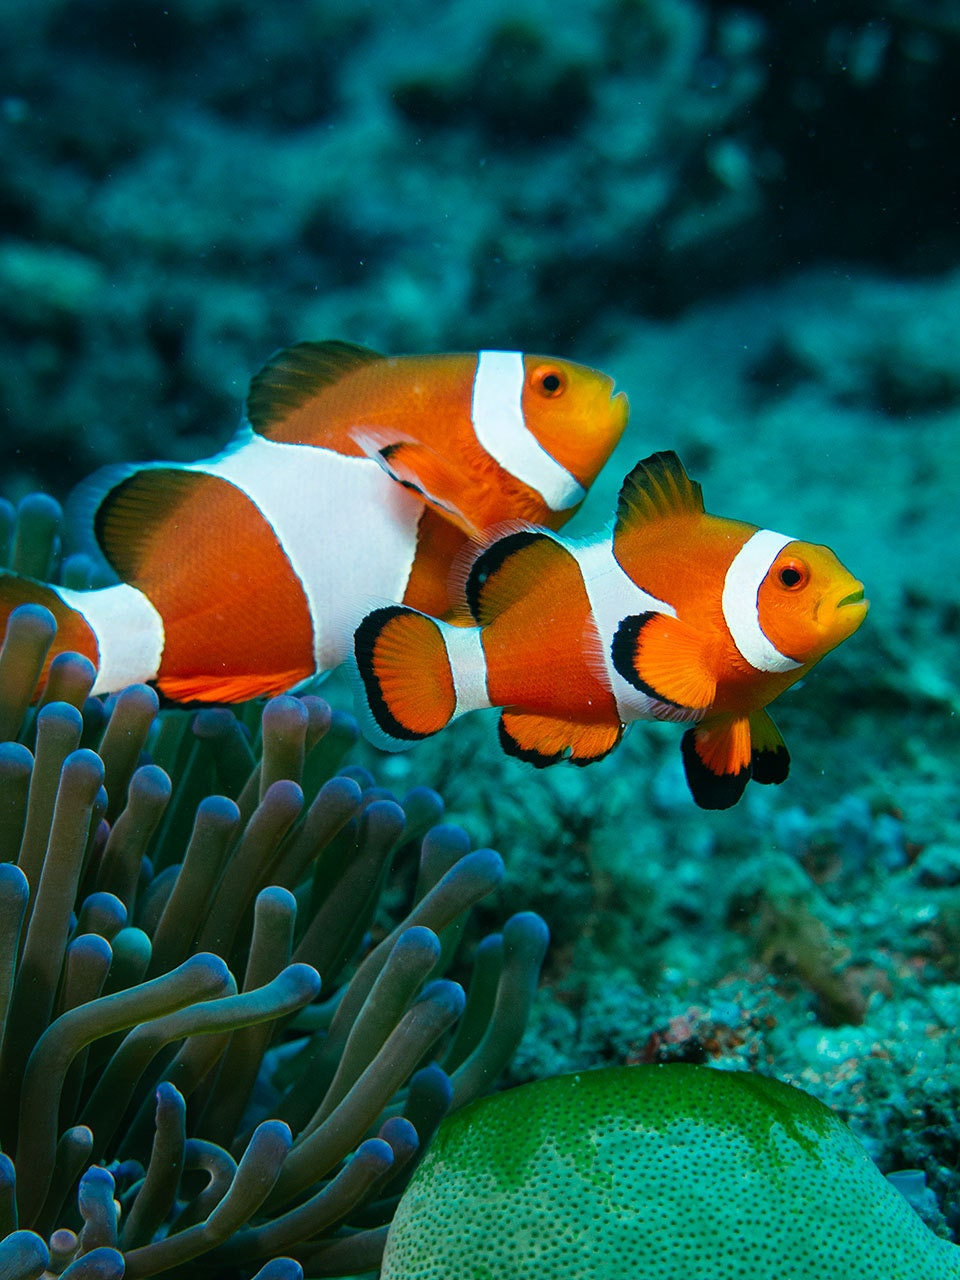 Orange clown fish and coral reef 8x12 inch x for Clown fish size